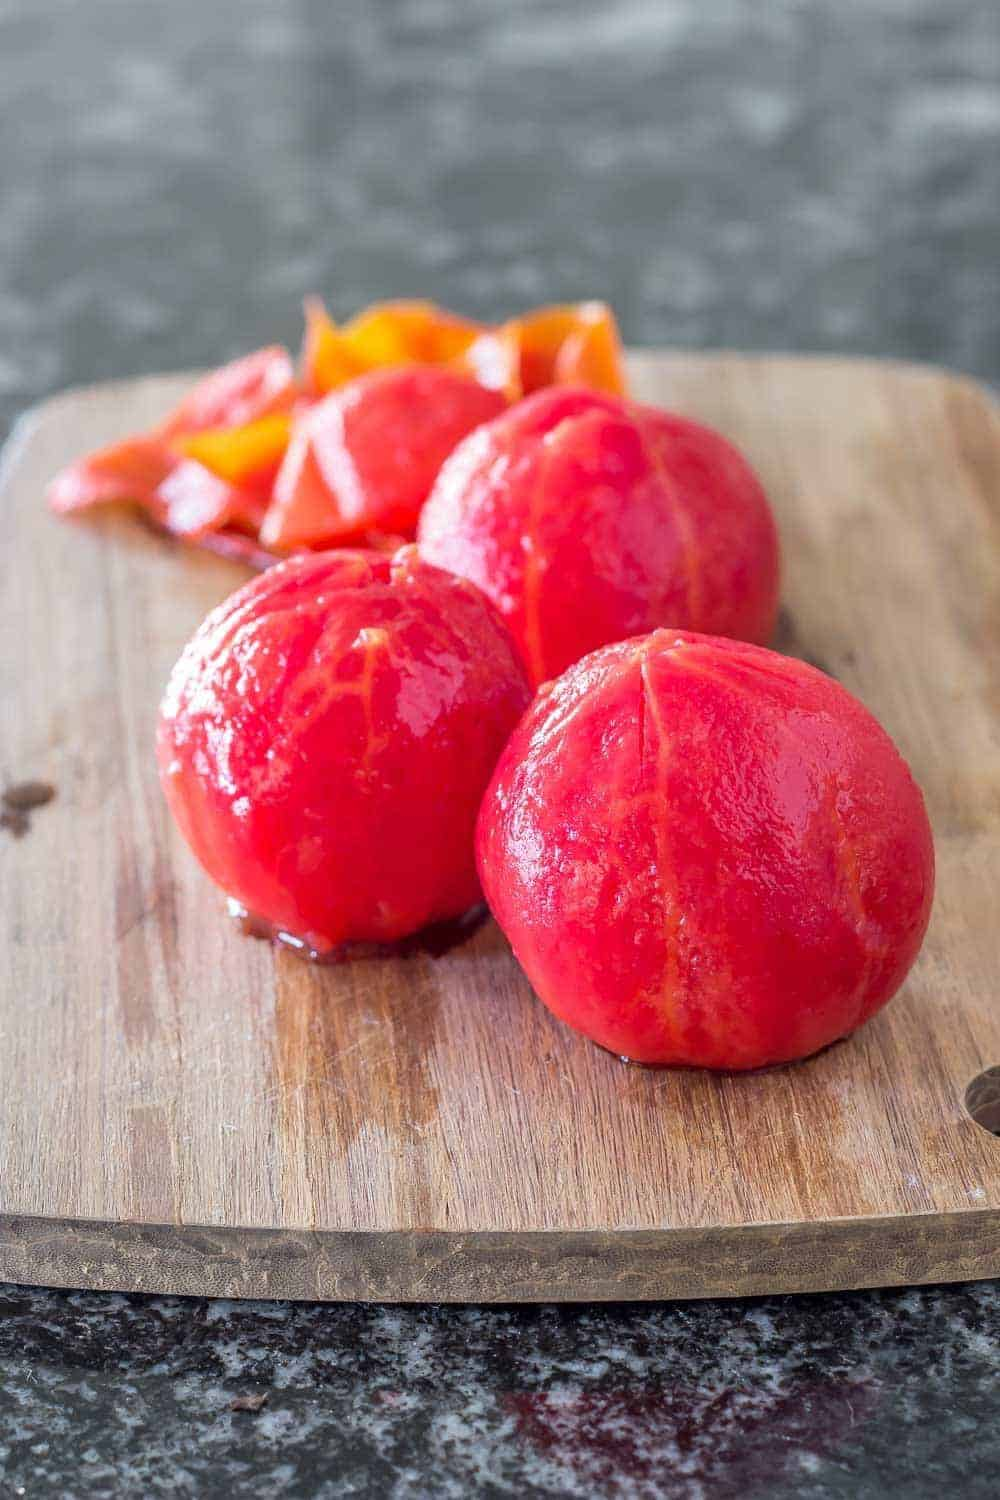 Learn how to peel tomatoes for cooking and canning. It's easy!